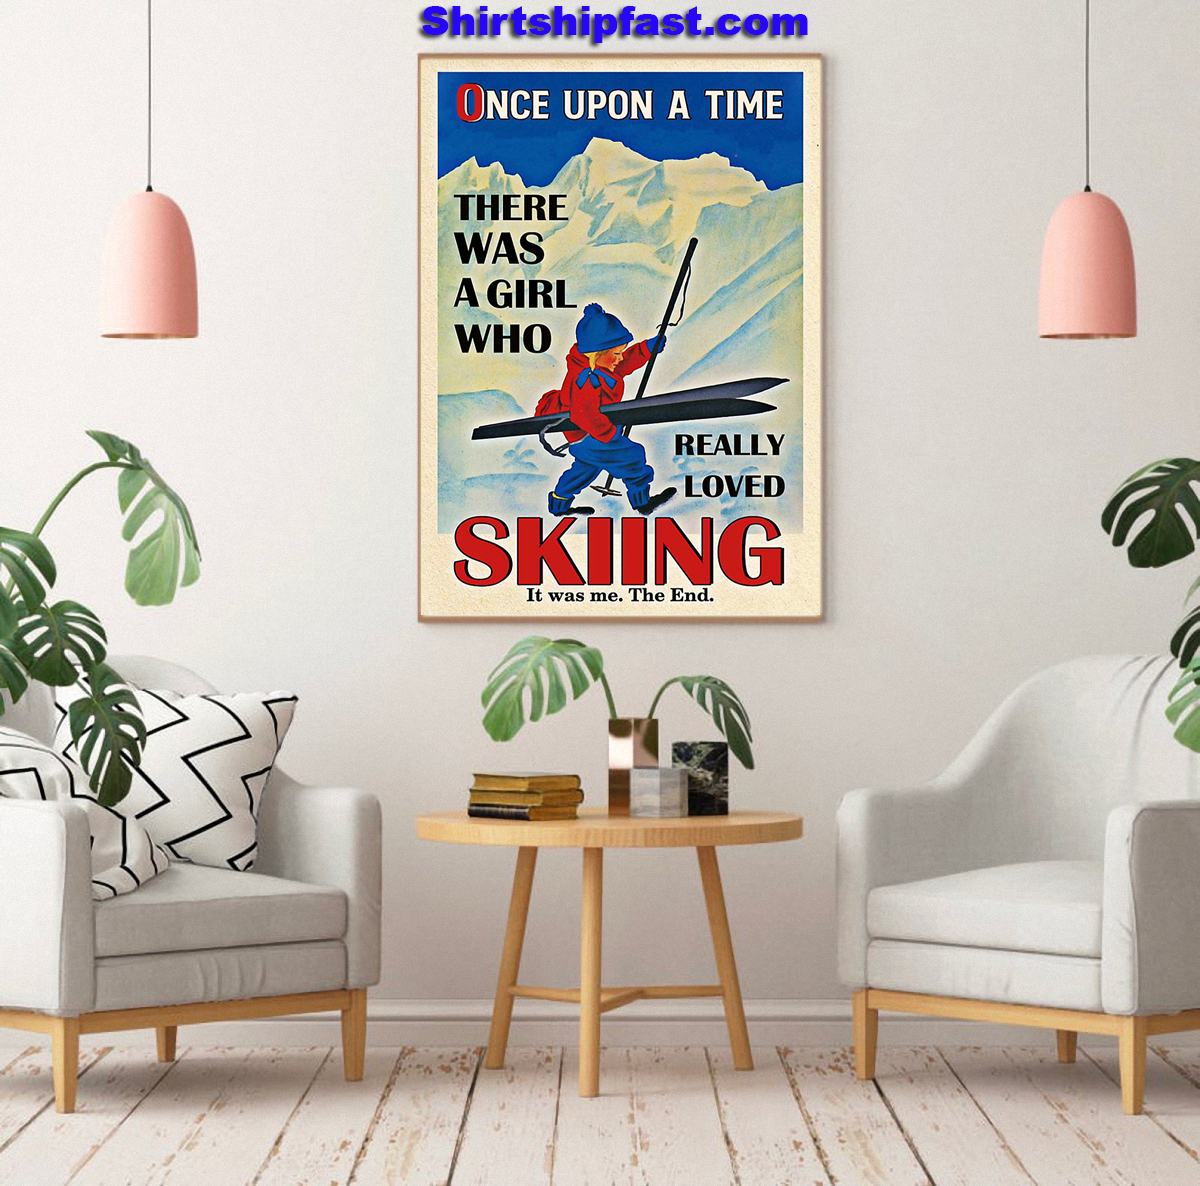 Once upon a time there was a girl who really loved skiing canvas